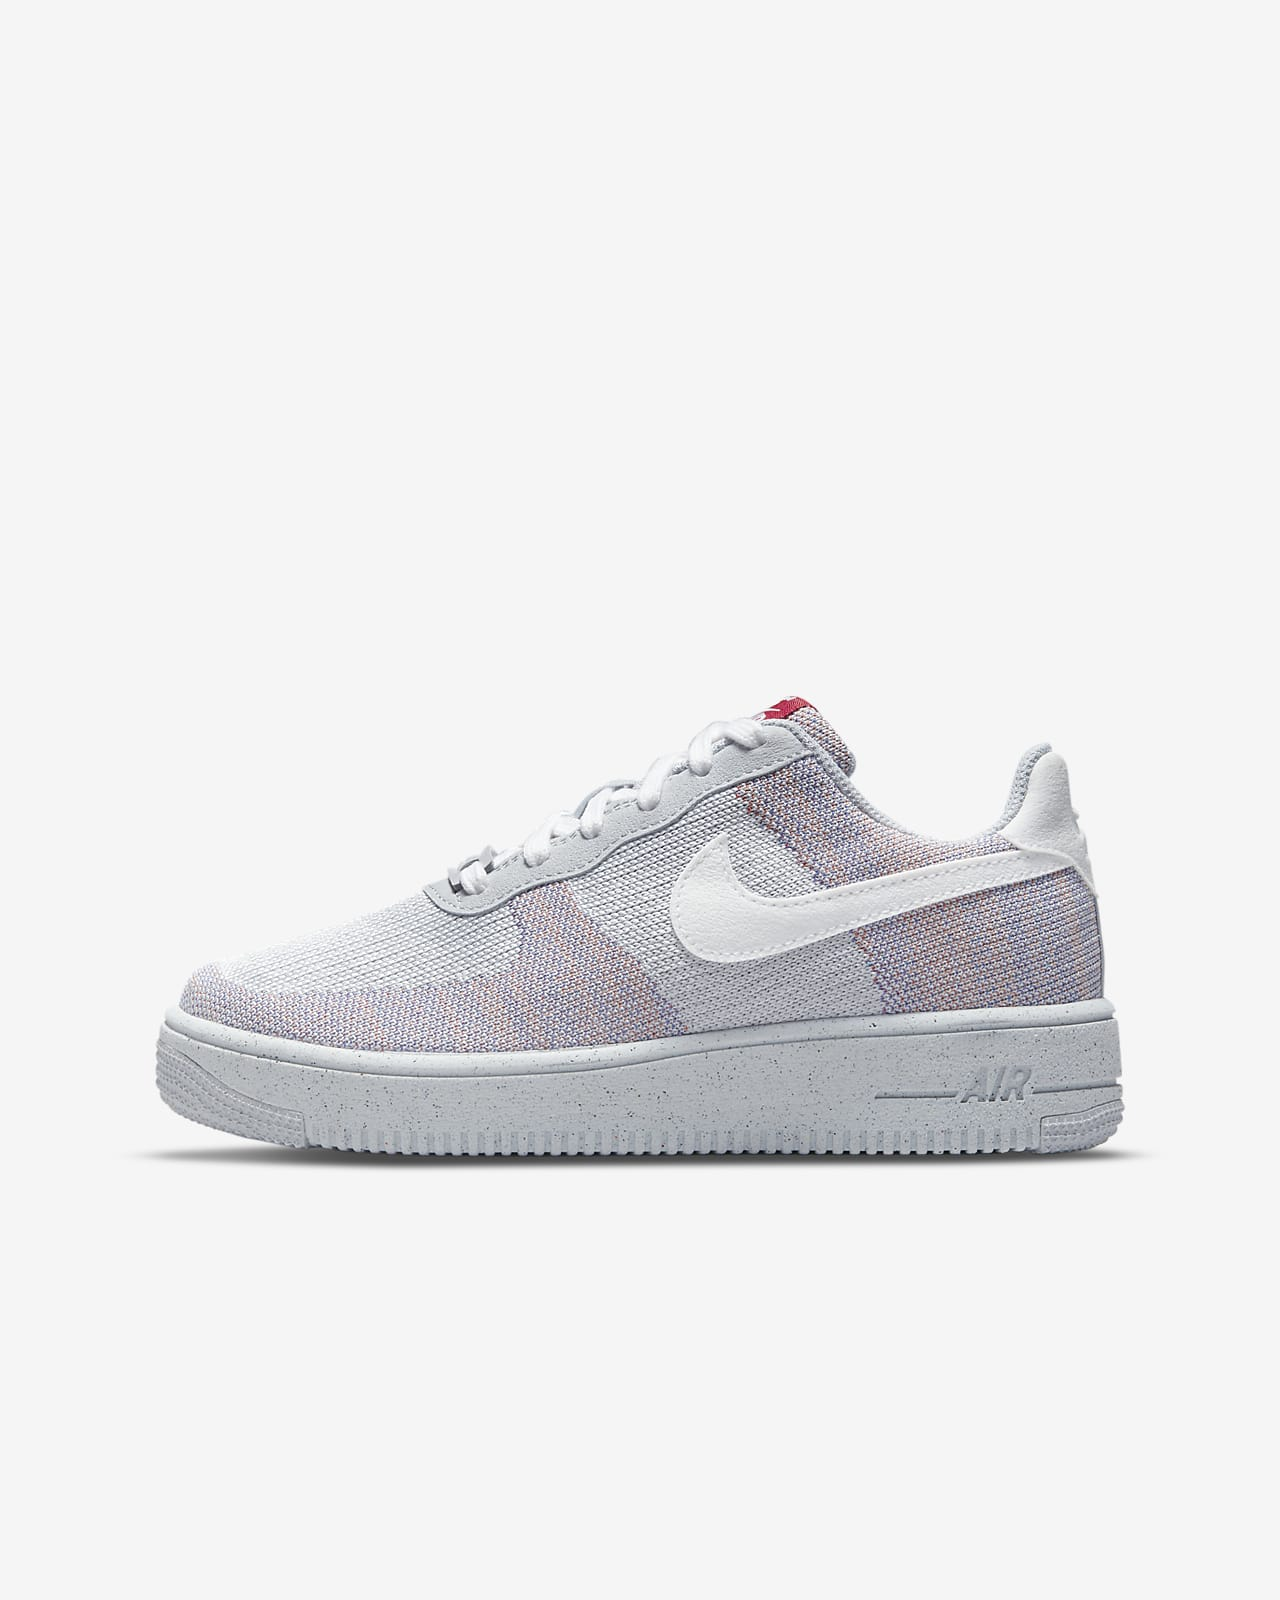 Nike Air Force 1 Crater Flyknit Big Kids' Shoe